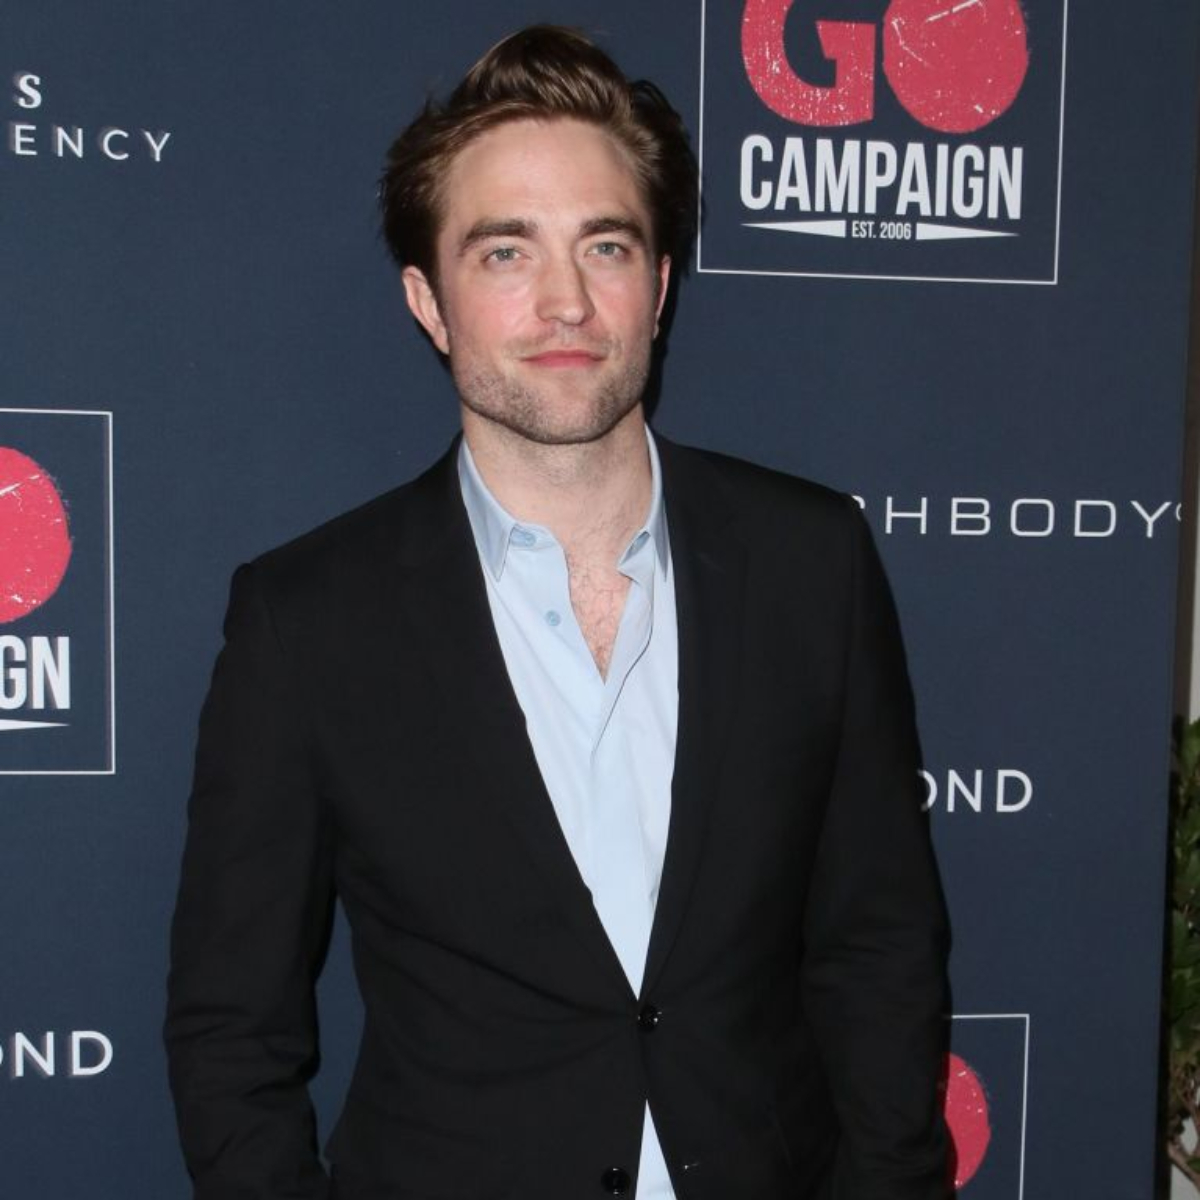 The Batman: Matt Reeves shares FIRST PHOTO from sets of the Robert Pattinson starrer; Check it out